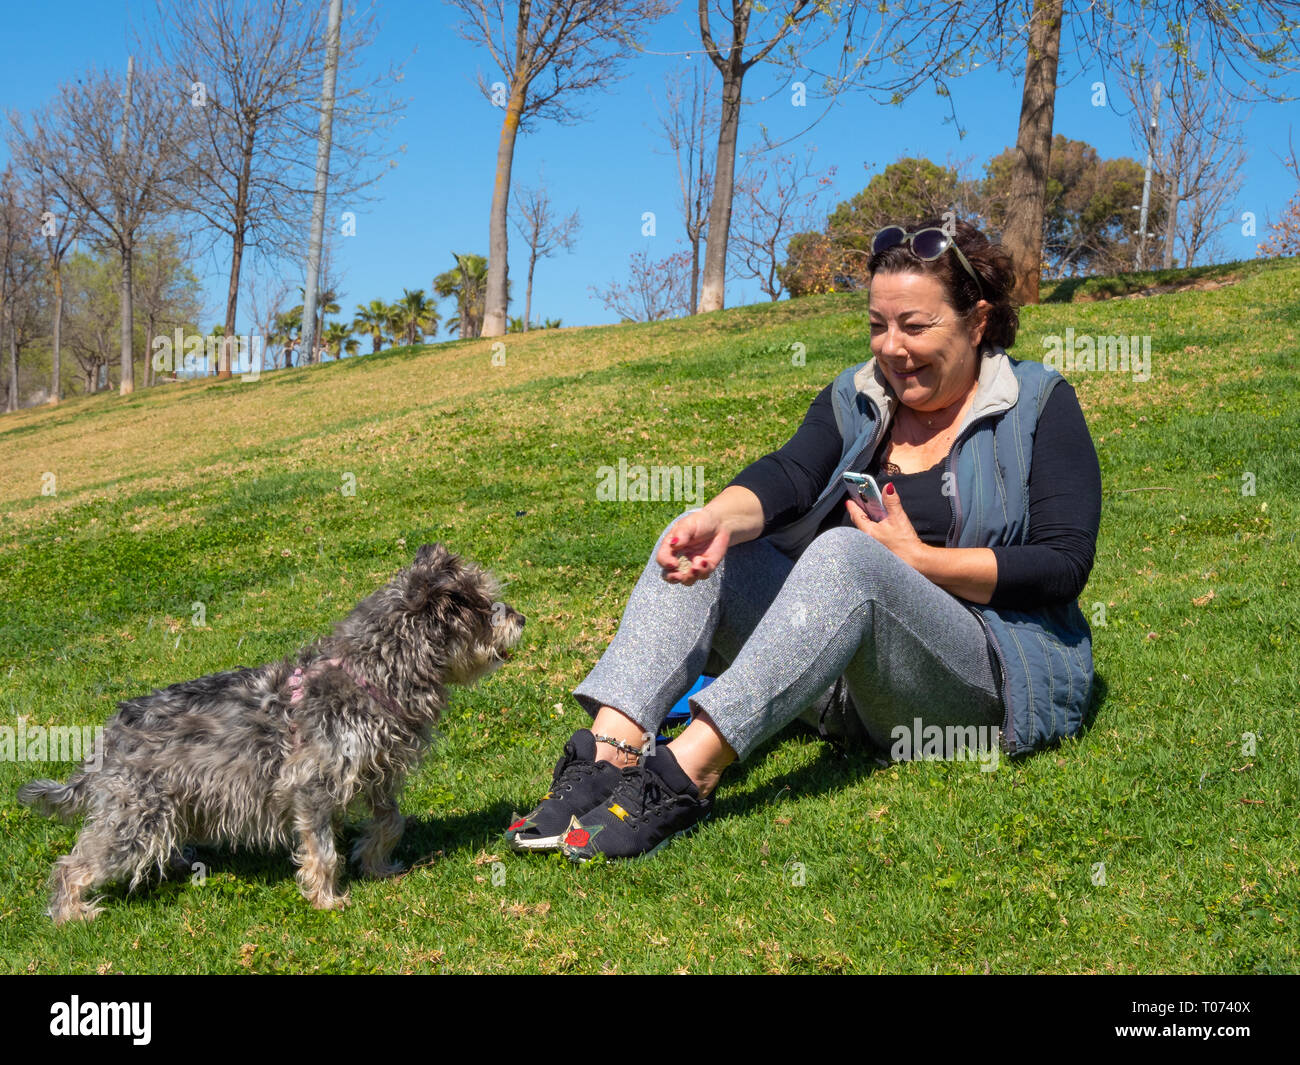 woman playing with her dog - Stock Image